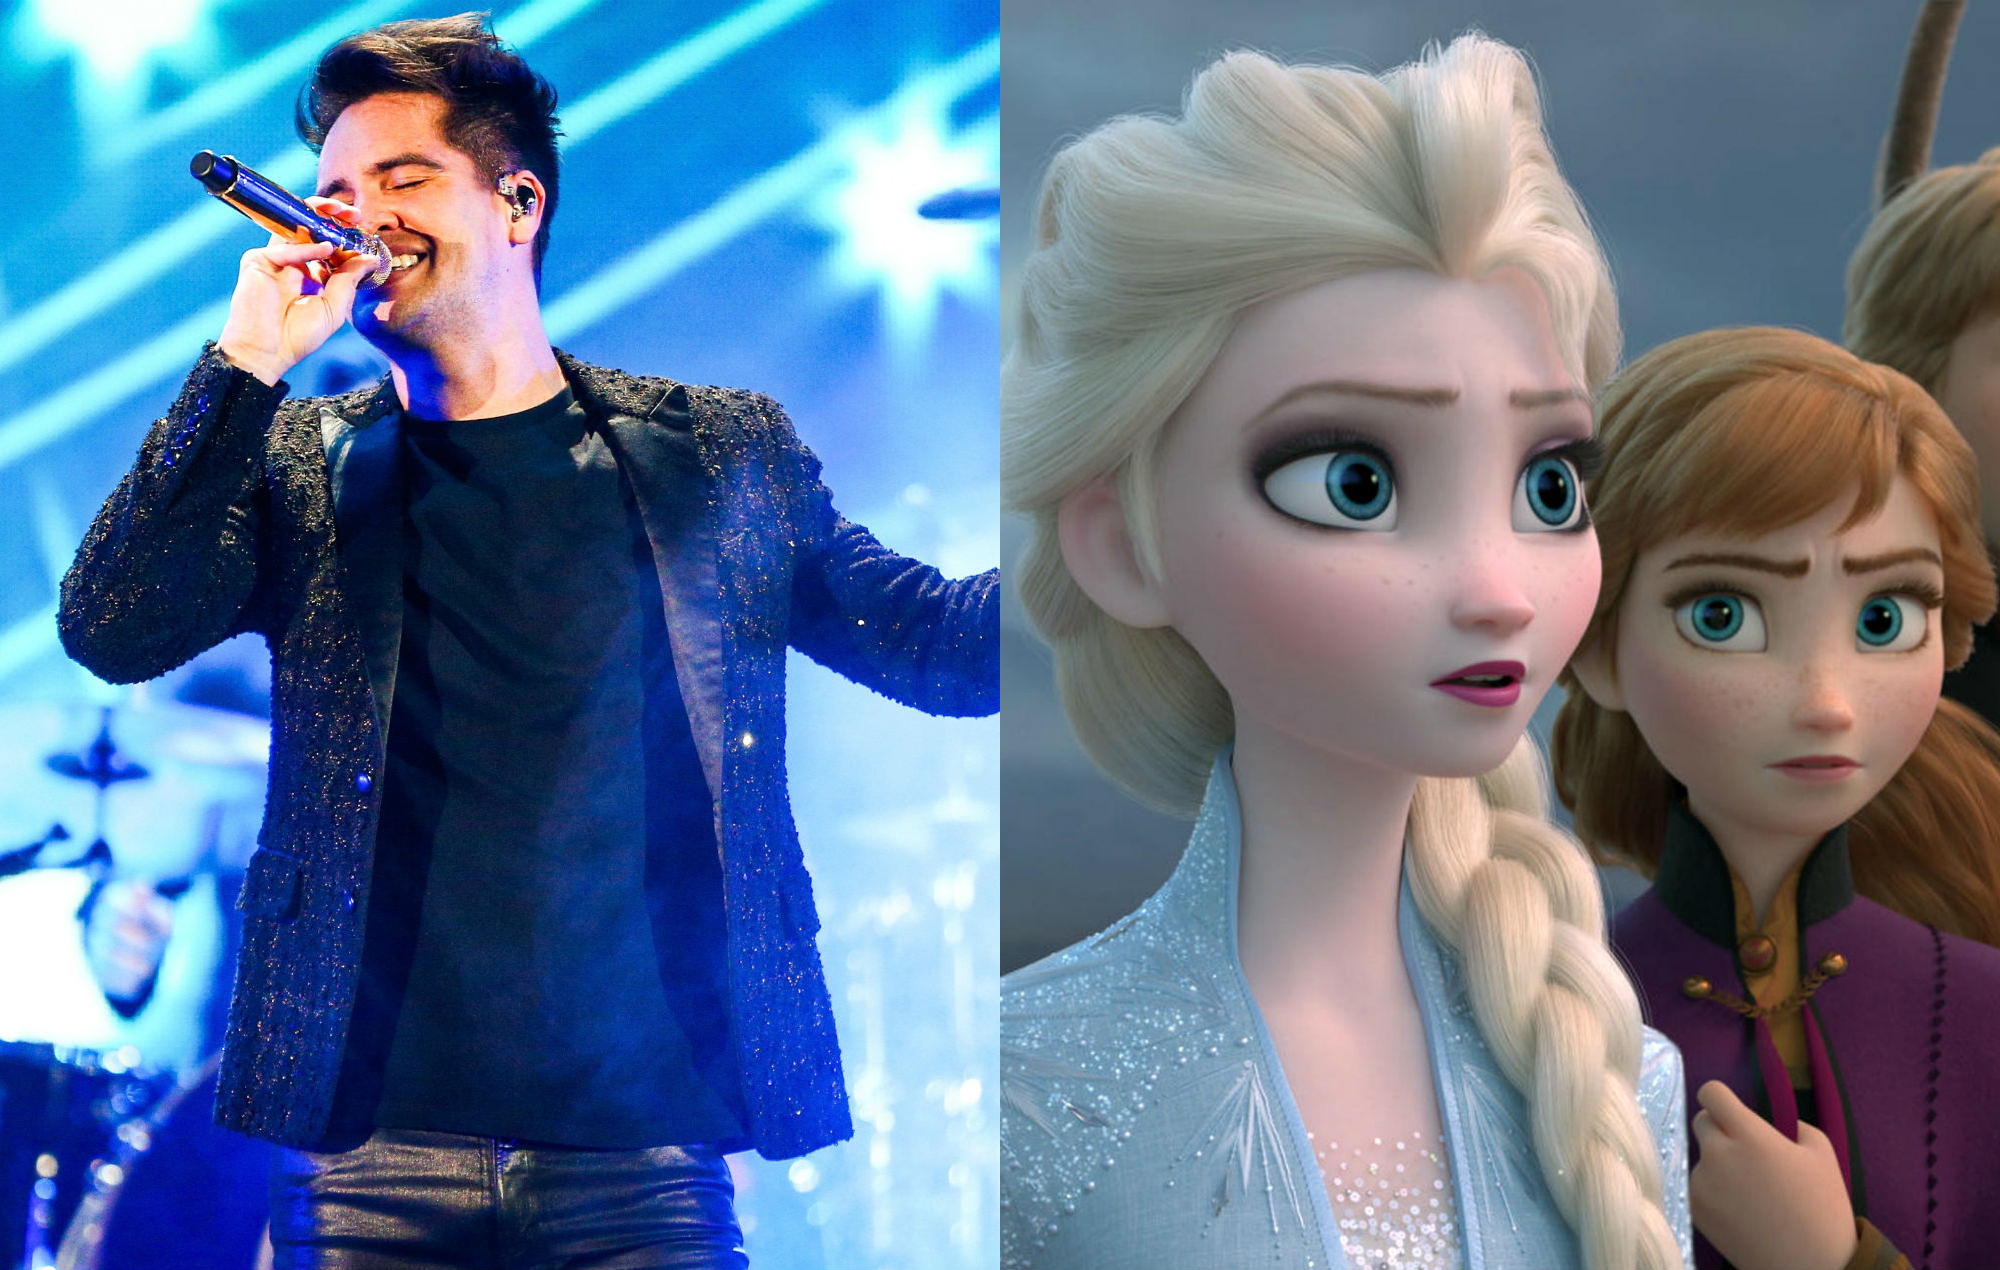 Brendon Urie Panic at the Disco Frozen 2 Into the Unknown